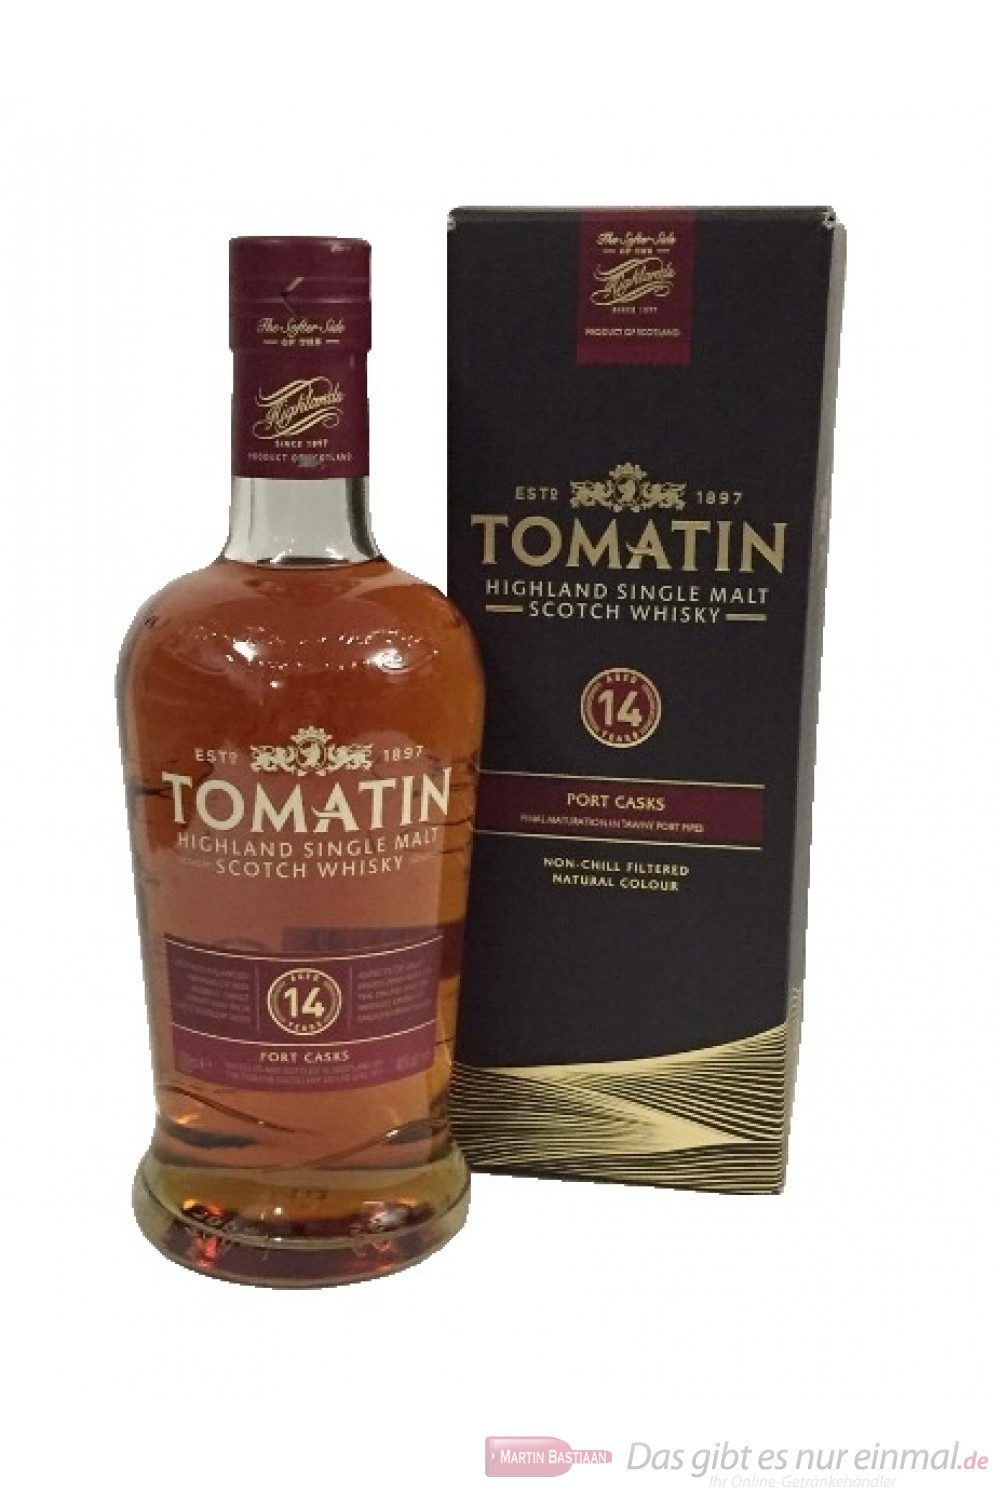 Tomatin 14 Years Port Cask